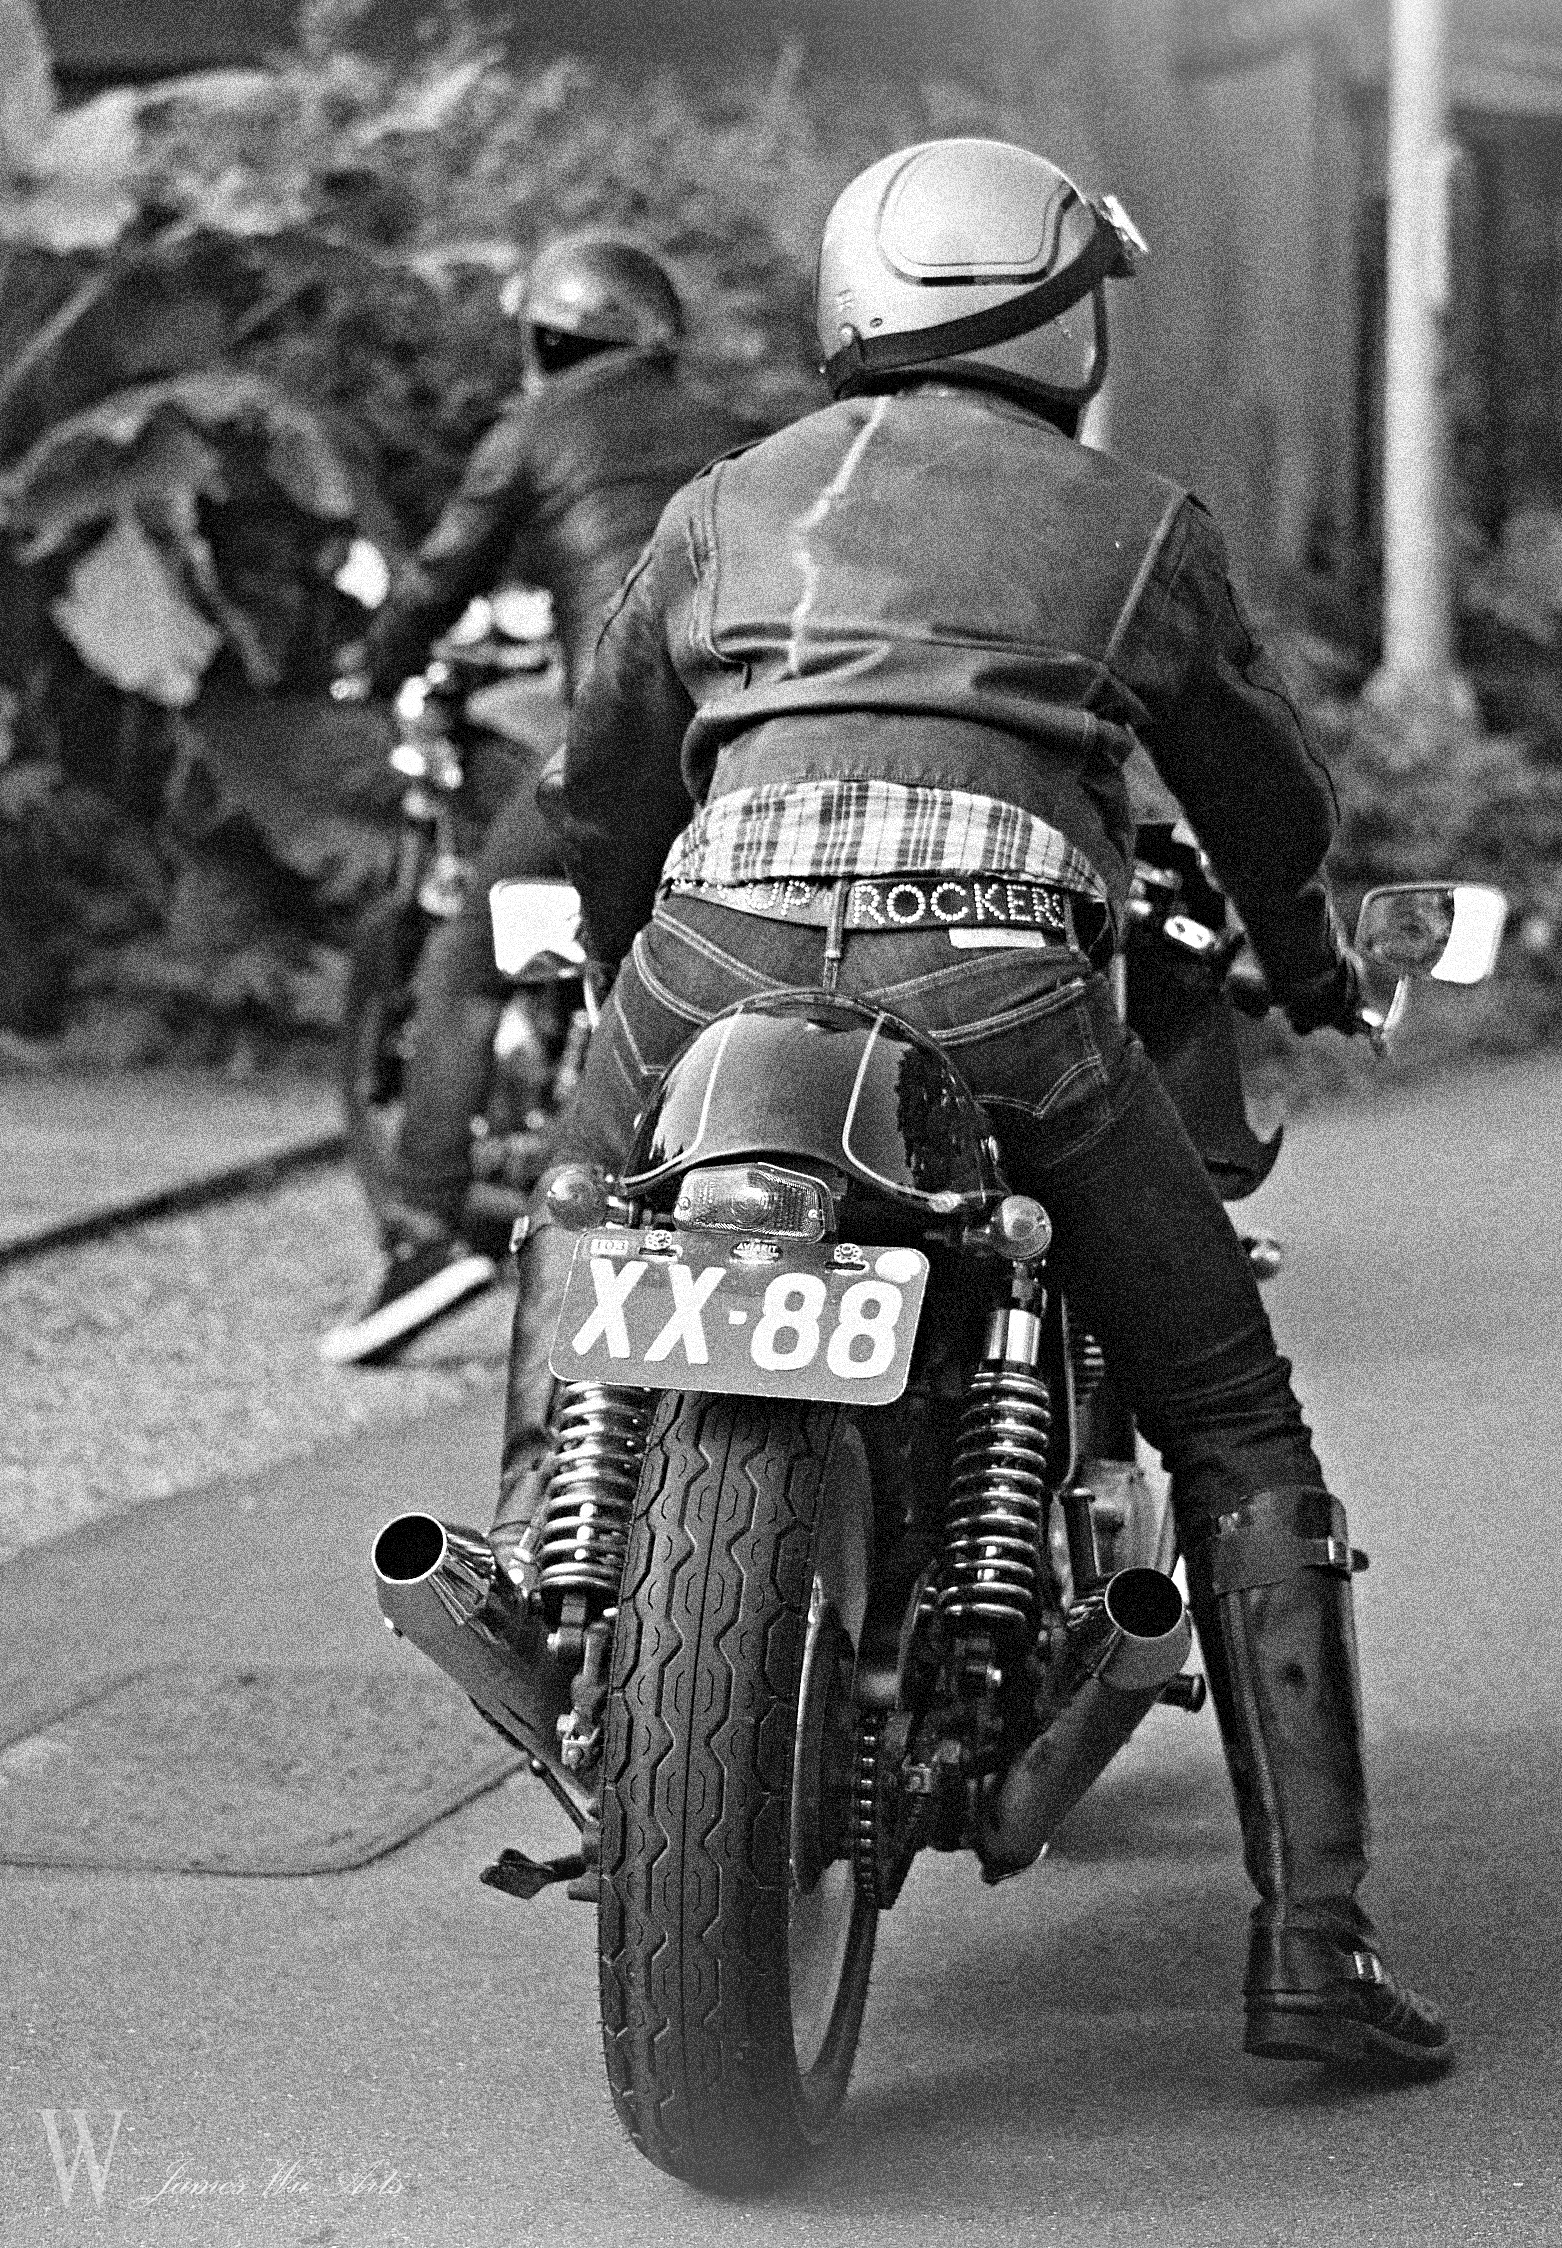 TONUP ROCKERS CAFE RACER (29)